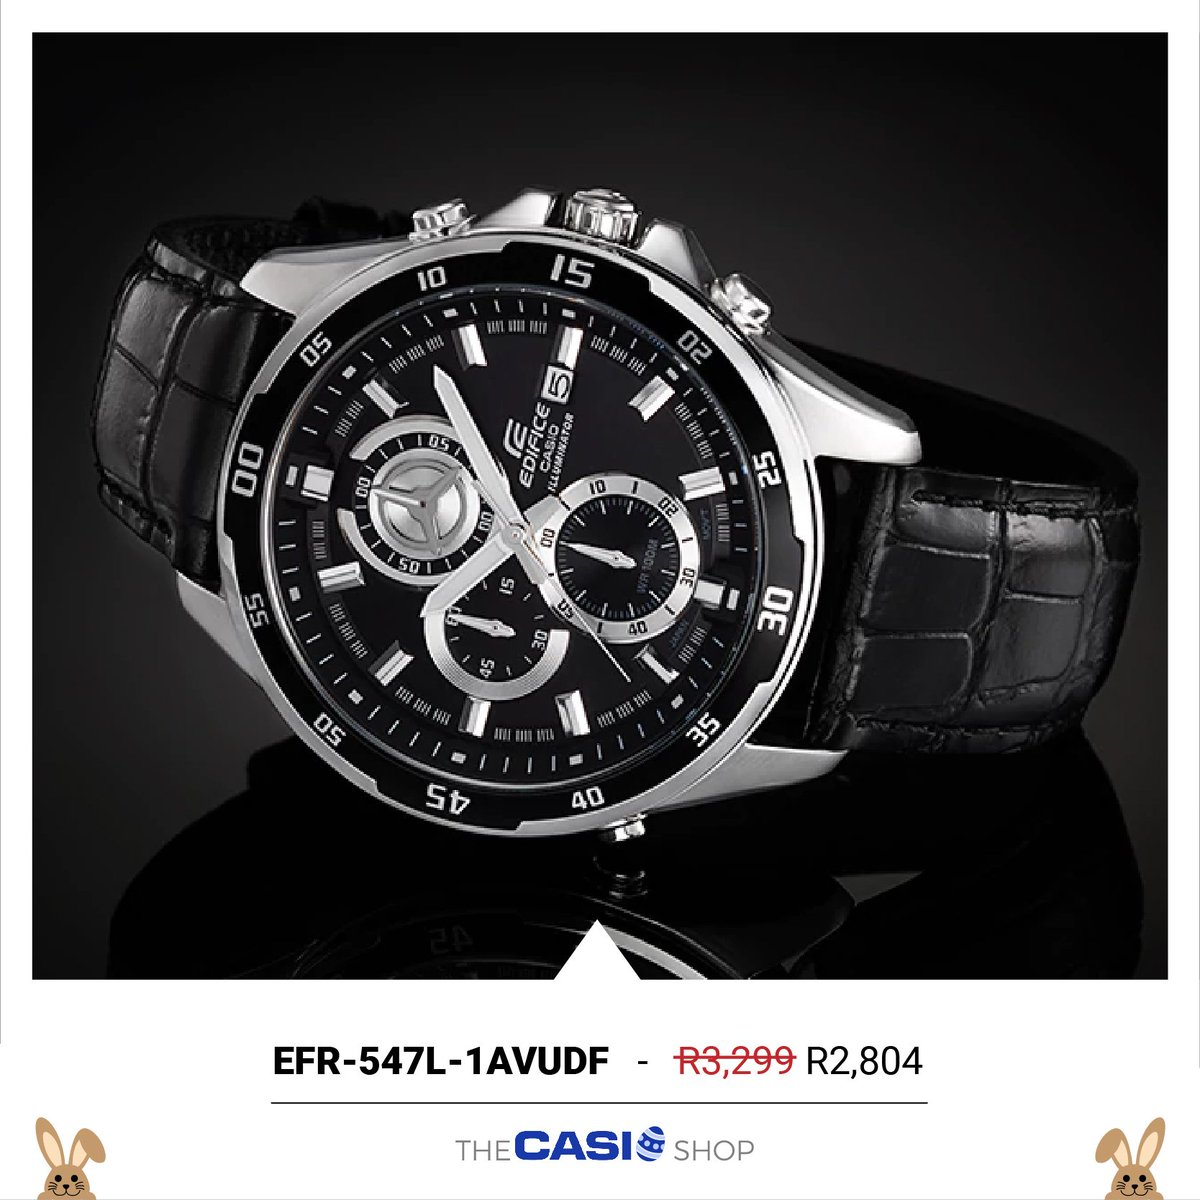 Edificewatch Hashtag On Twitter Casio Edifice Ef 547l 1av Shop Now With Free Delivery Http Googl 941vvi Casiowatch Chronographpic Rf8ygewaiq